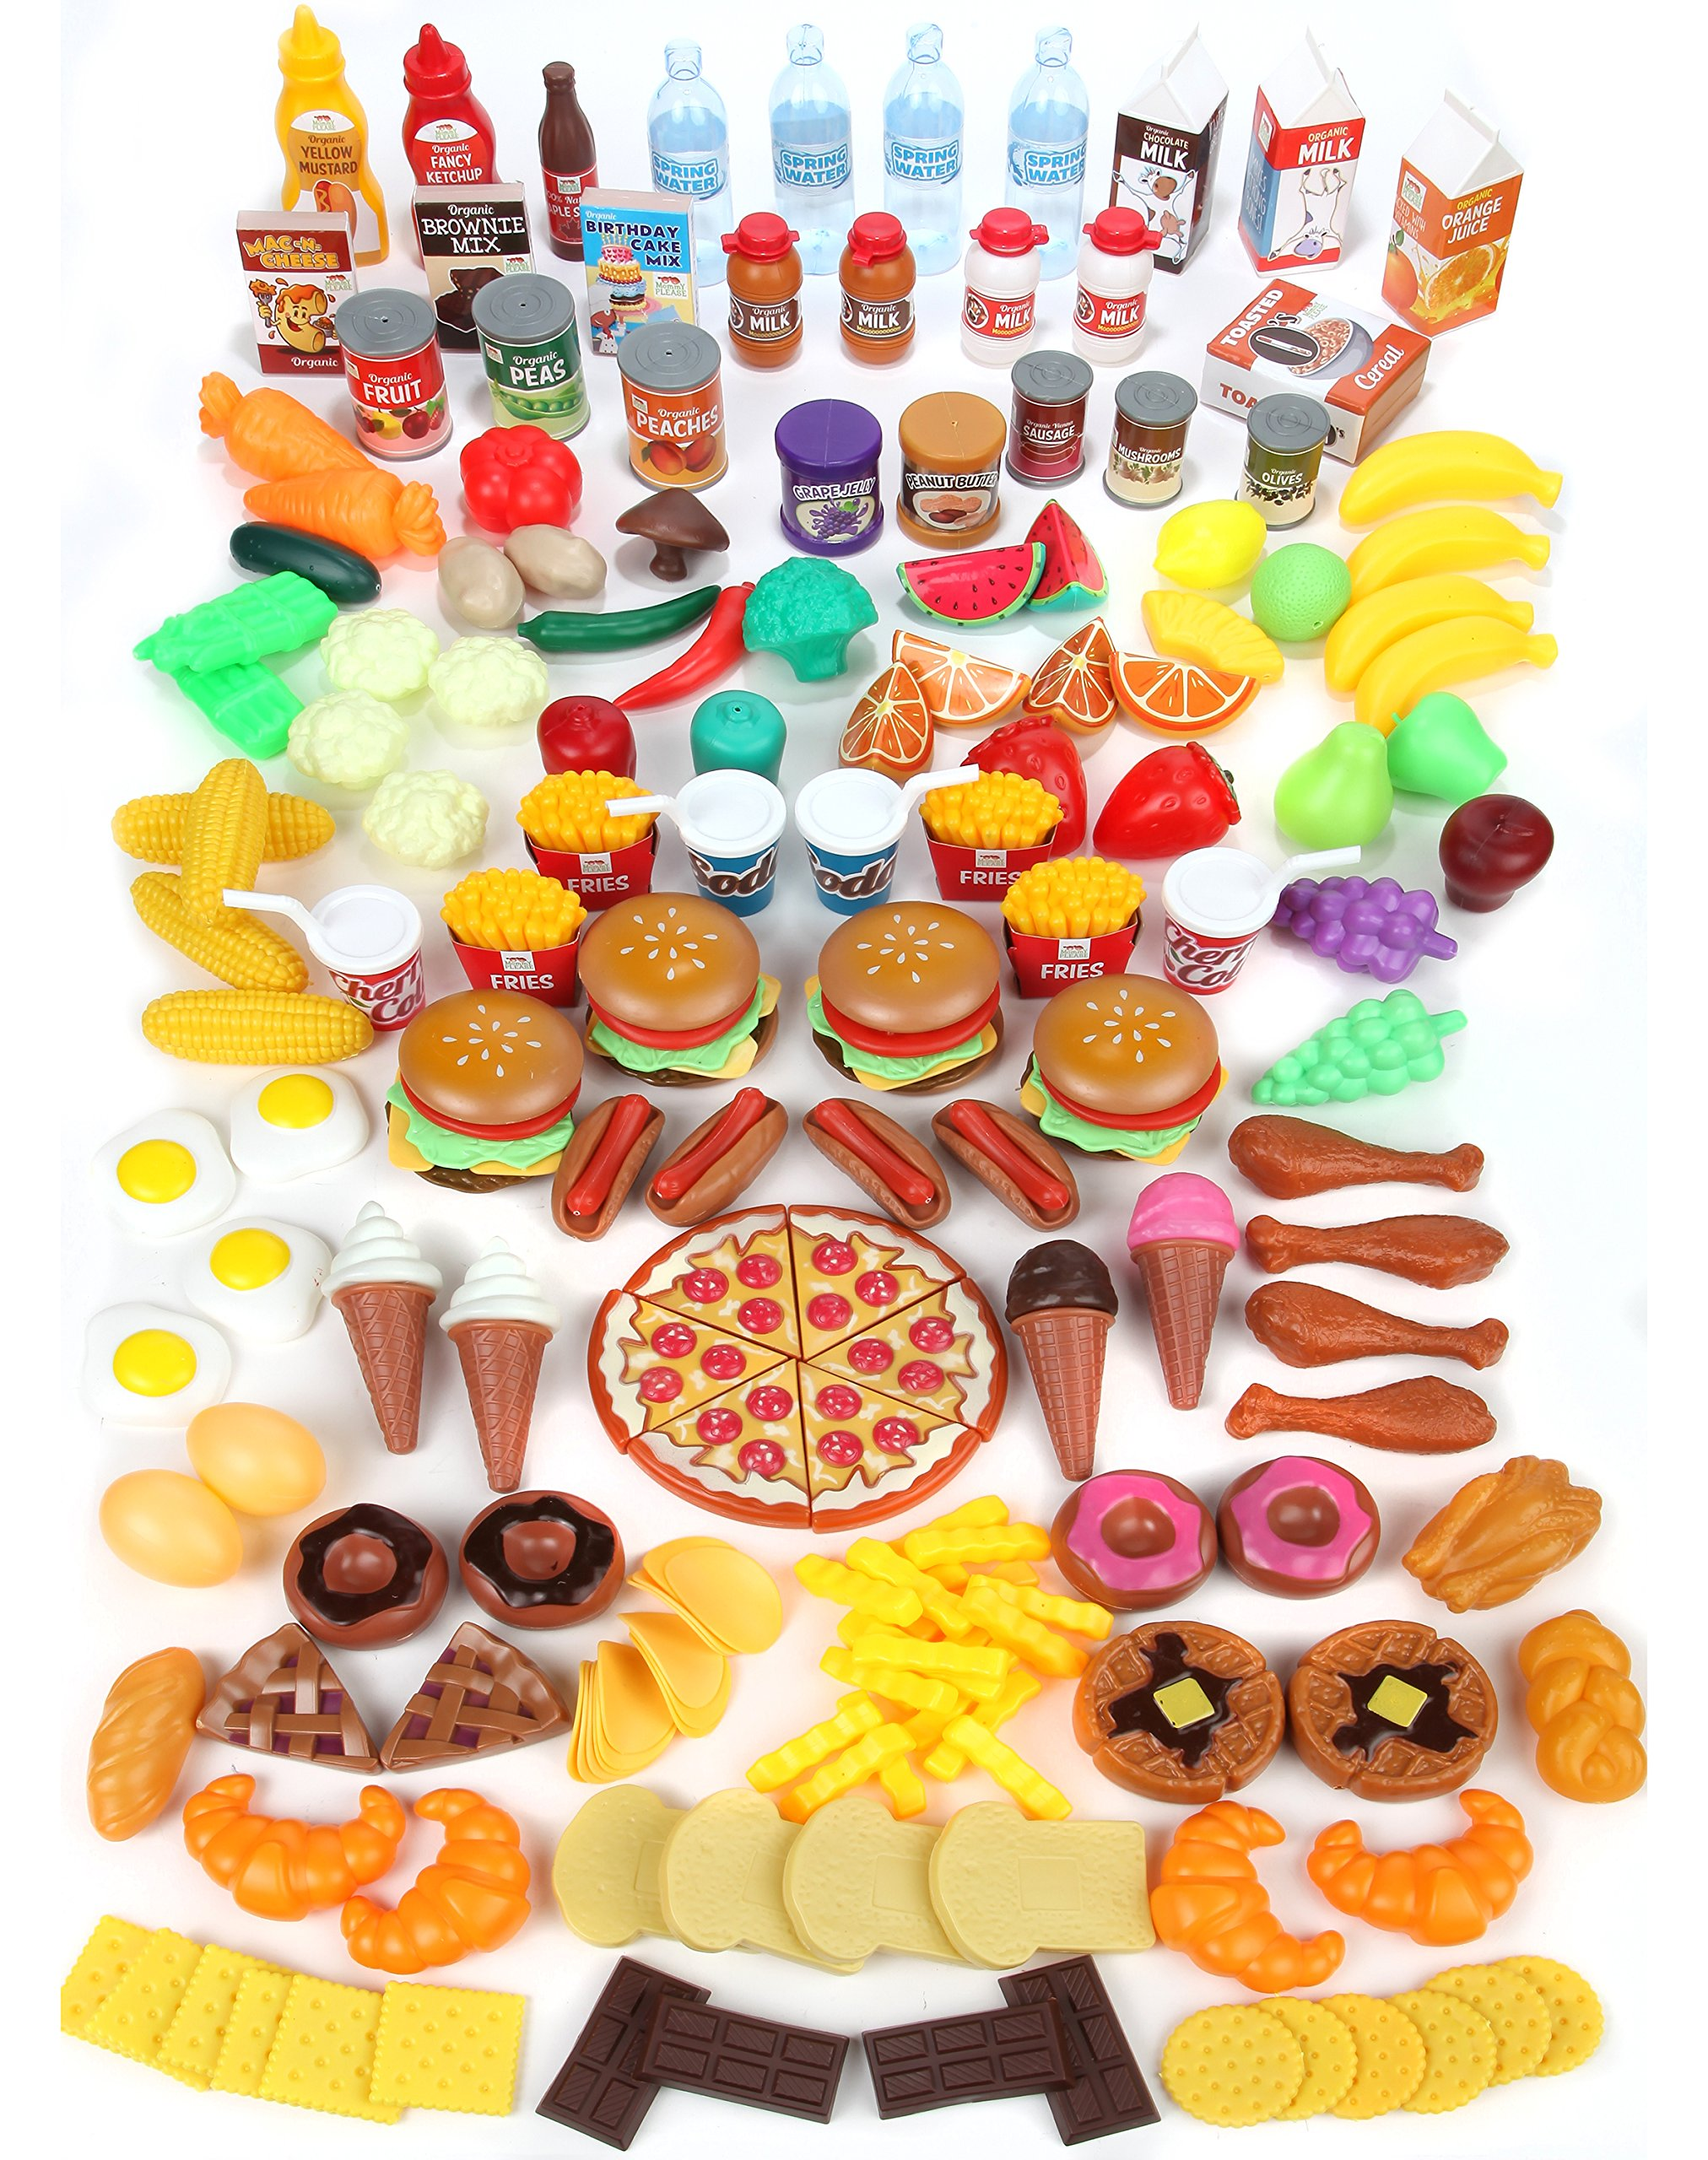 Mommy Please Play Food Set for Kids - Huge 202 Piece Pretend Food Toys is Perfect for Kitchen Sets and Play Food Kitchen Toys - Inspire Your Toddlers Imagination + 4 Bonus Water Bottles